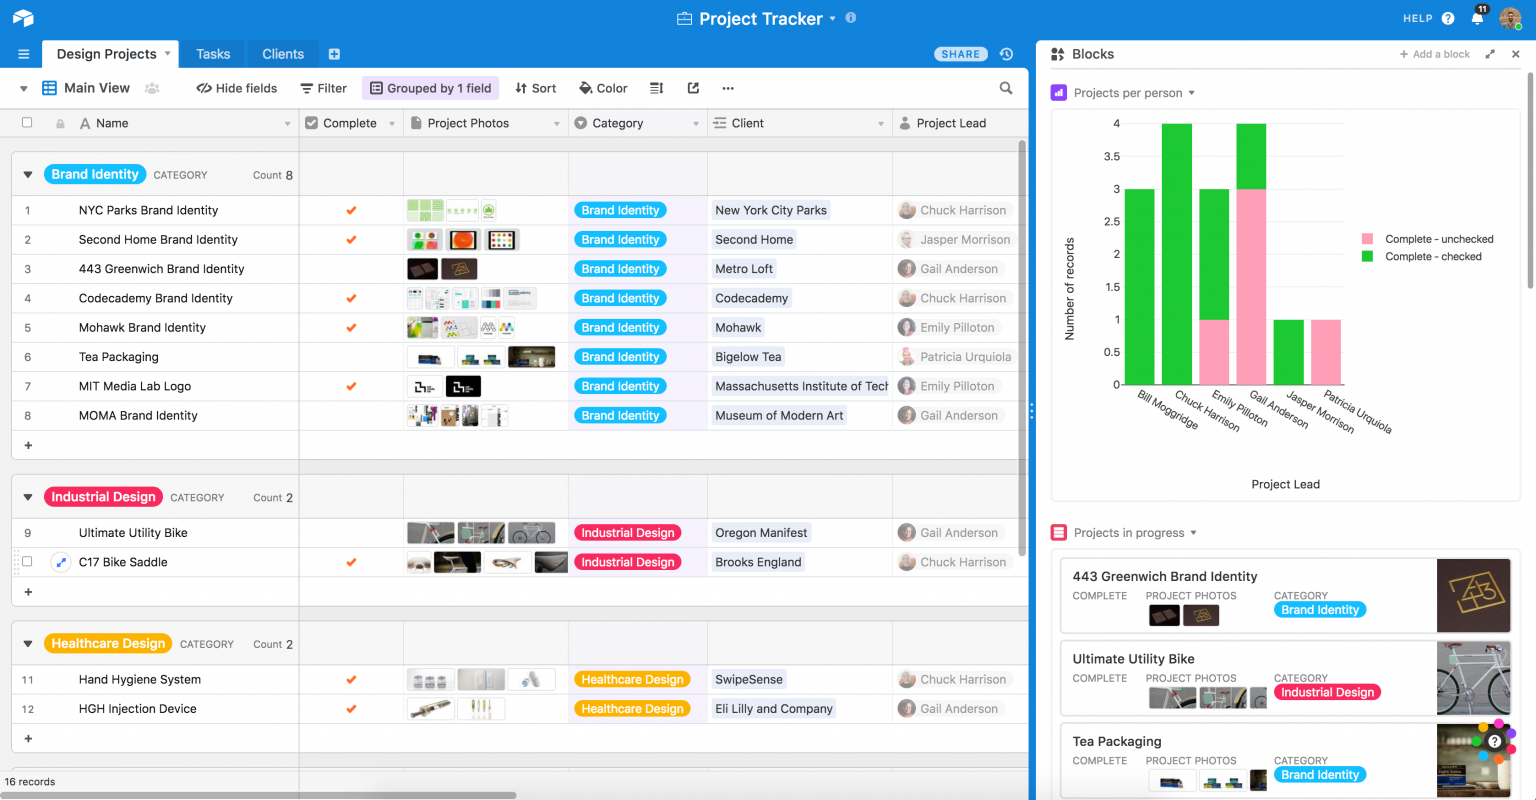 airtable ss1 1536x800 1 - Workplace Innovation Platforms: The 2021 Guide